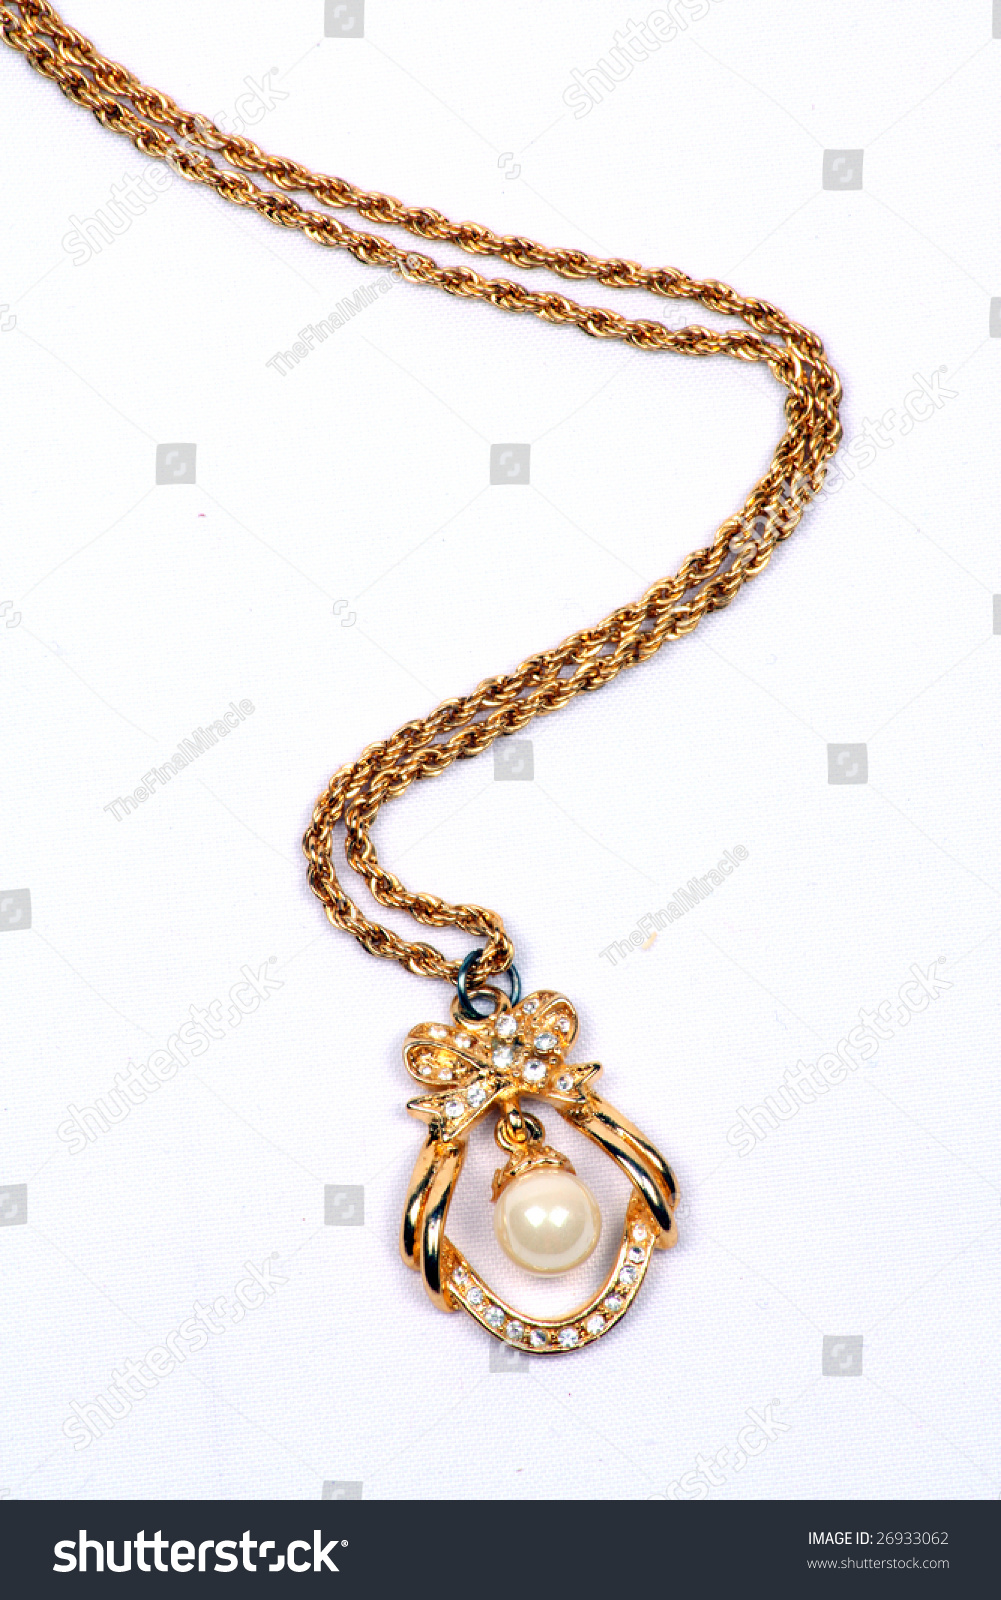 Ethnic Gold Necklace Pearl Pendant Traditional Stock Photo Edit Now 26933062